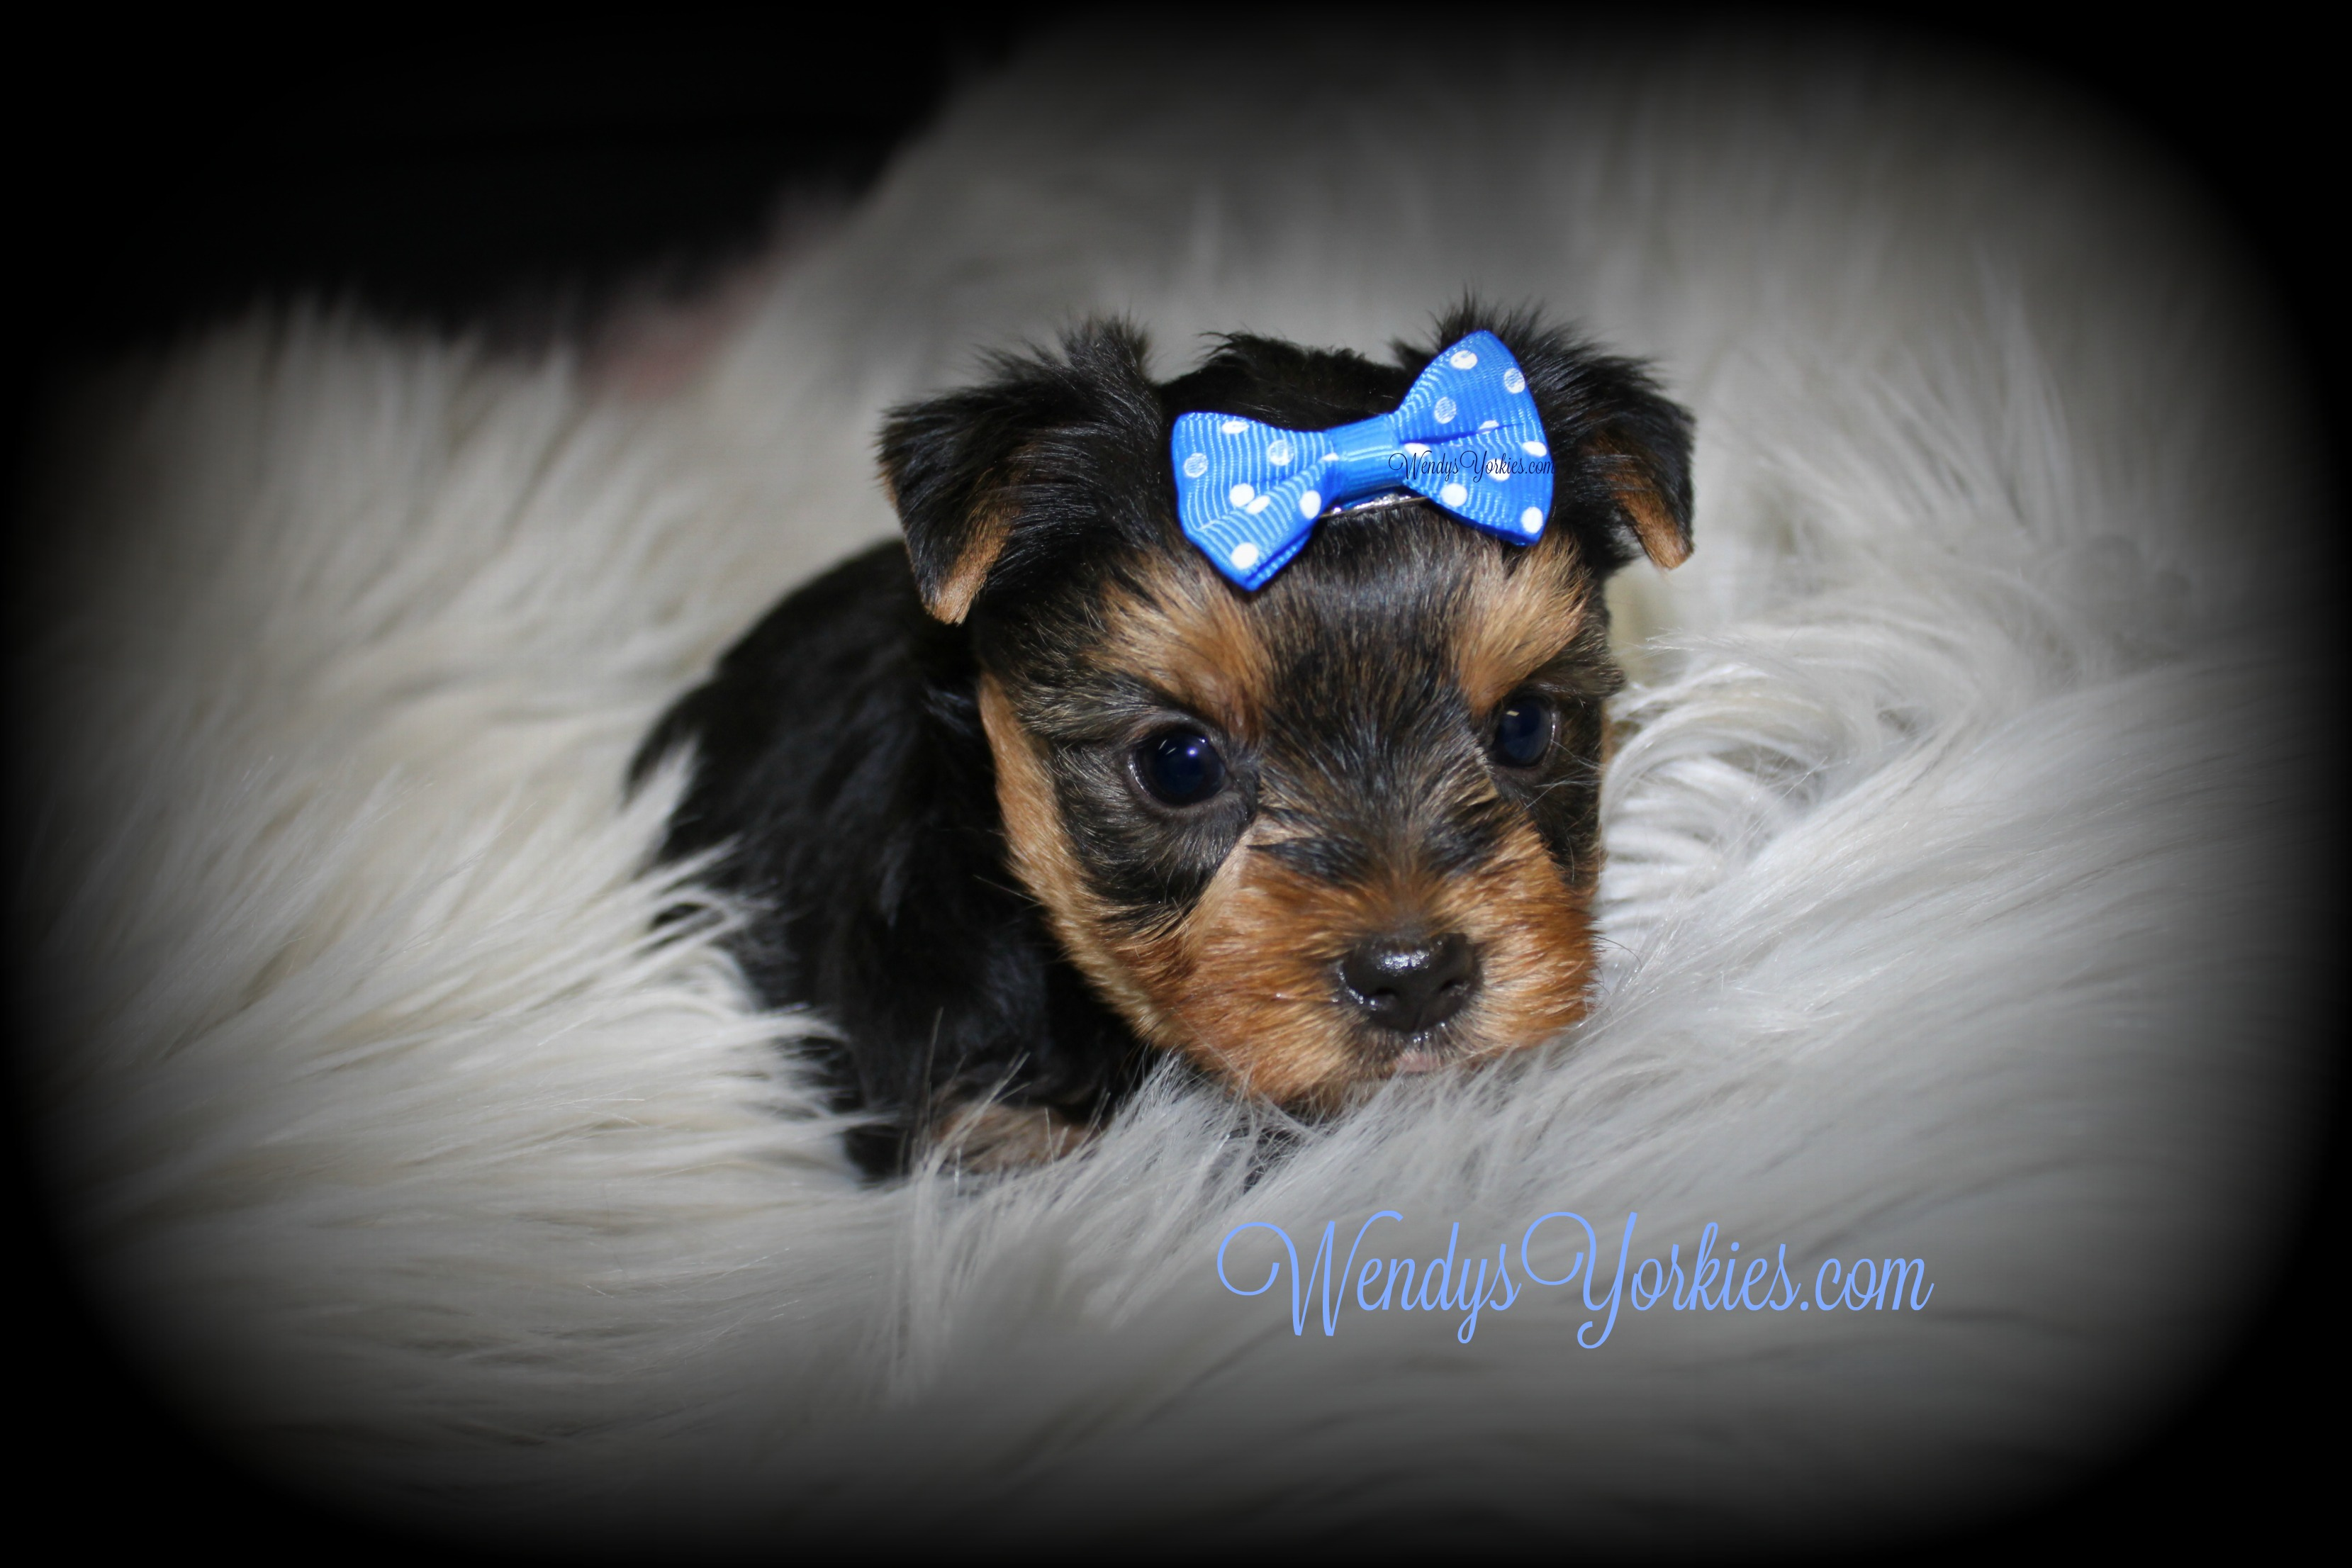 Toy Yorkie puppies for sale, WEndysYorkies.com, Grace m1